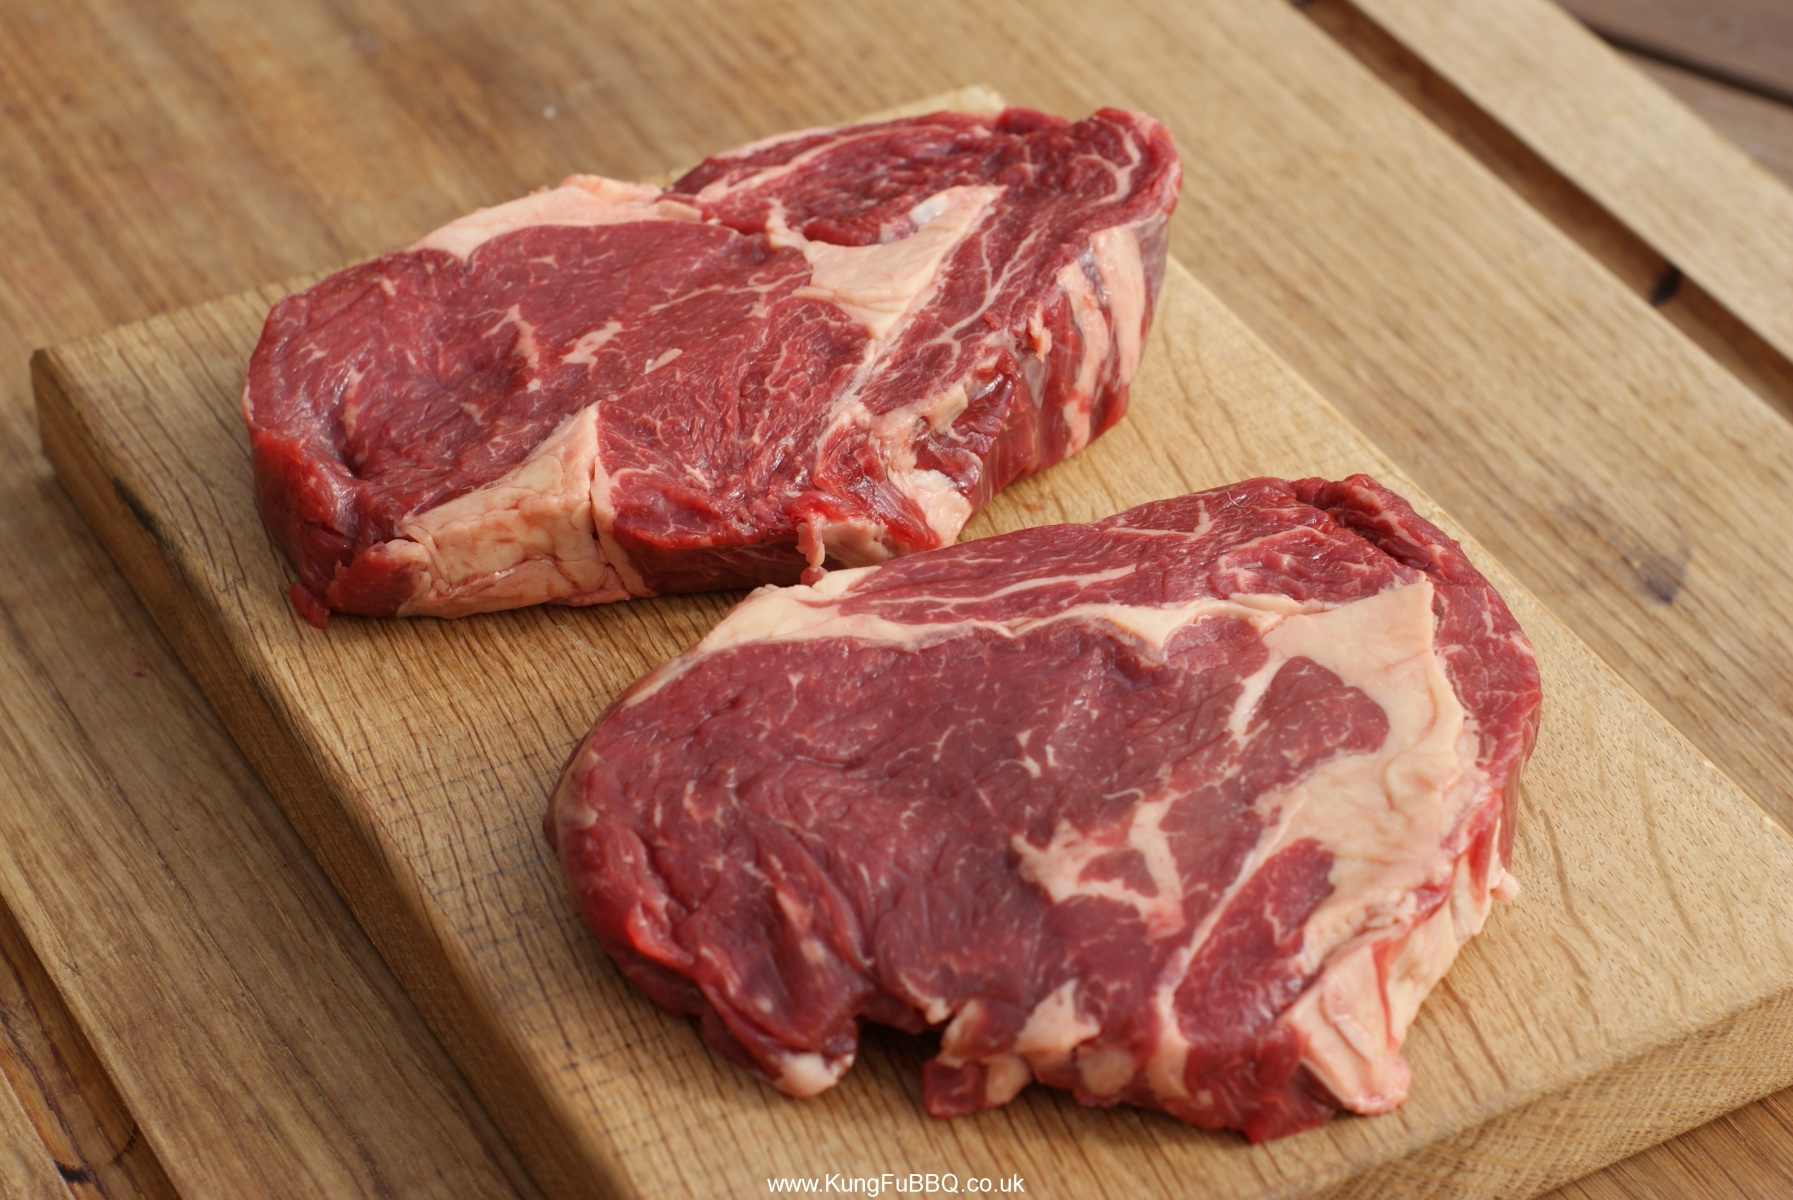 Bbq25 17 British Quot Old Cow Quot Rib Eye Steaks Kungfubbq